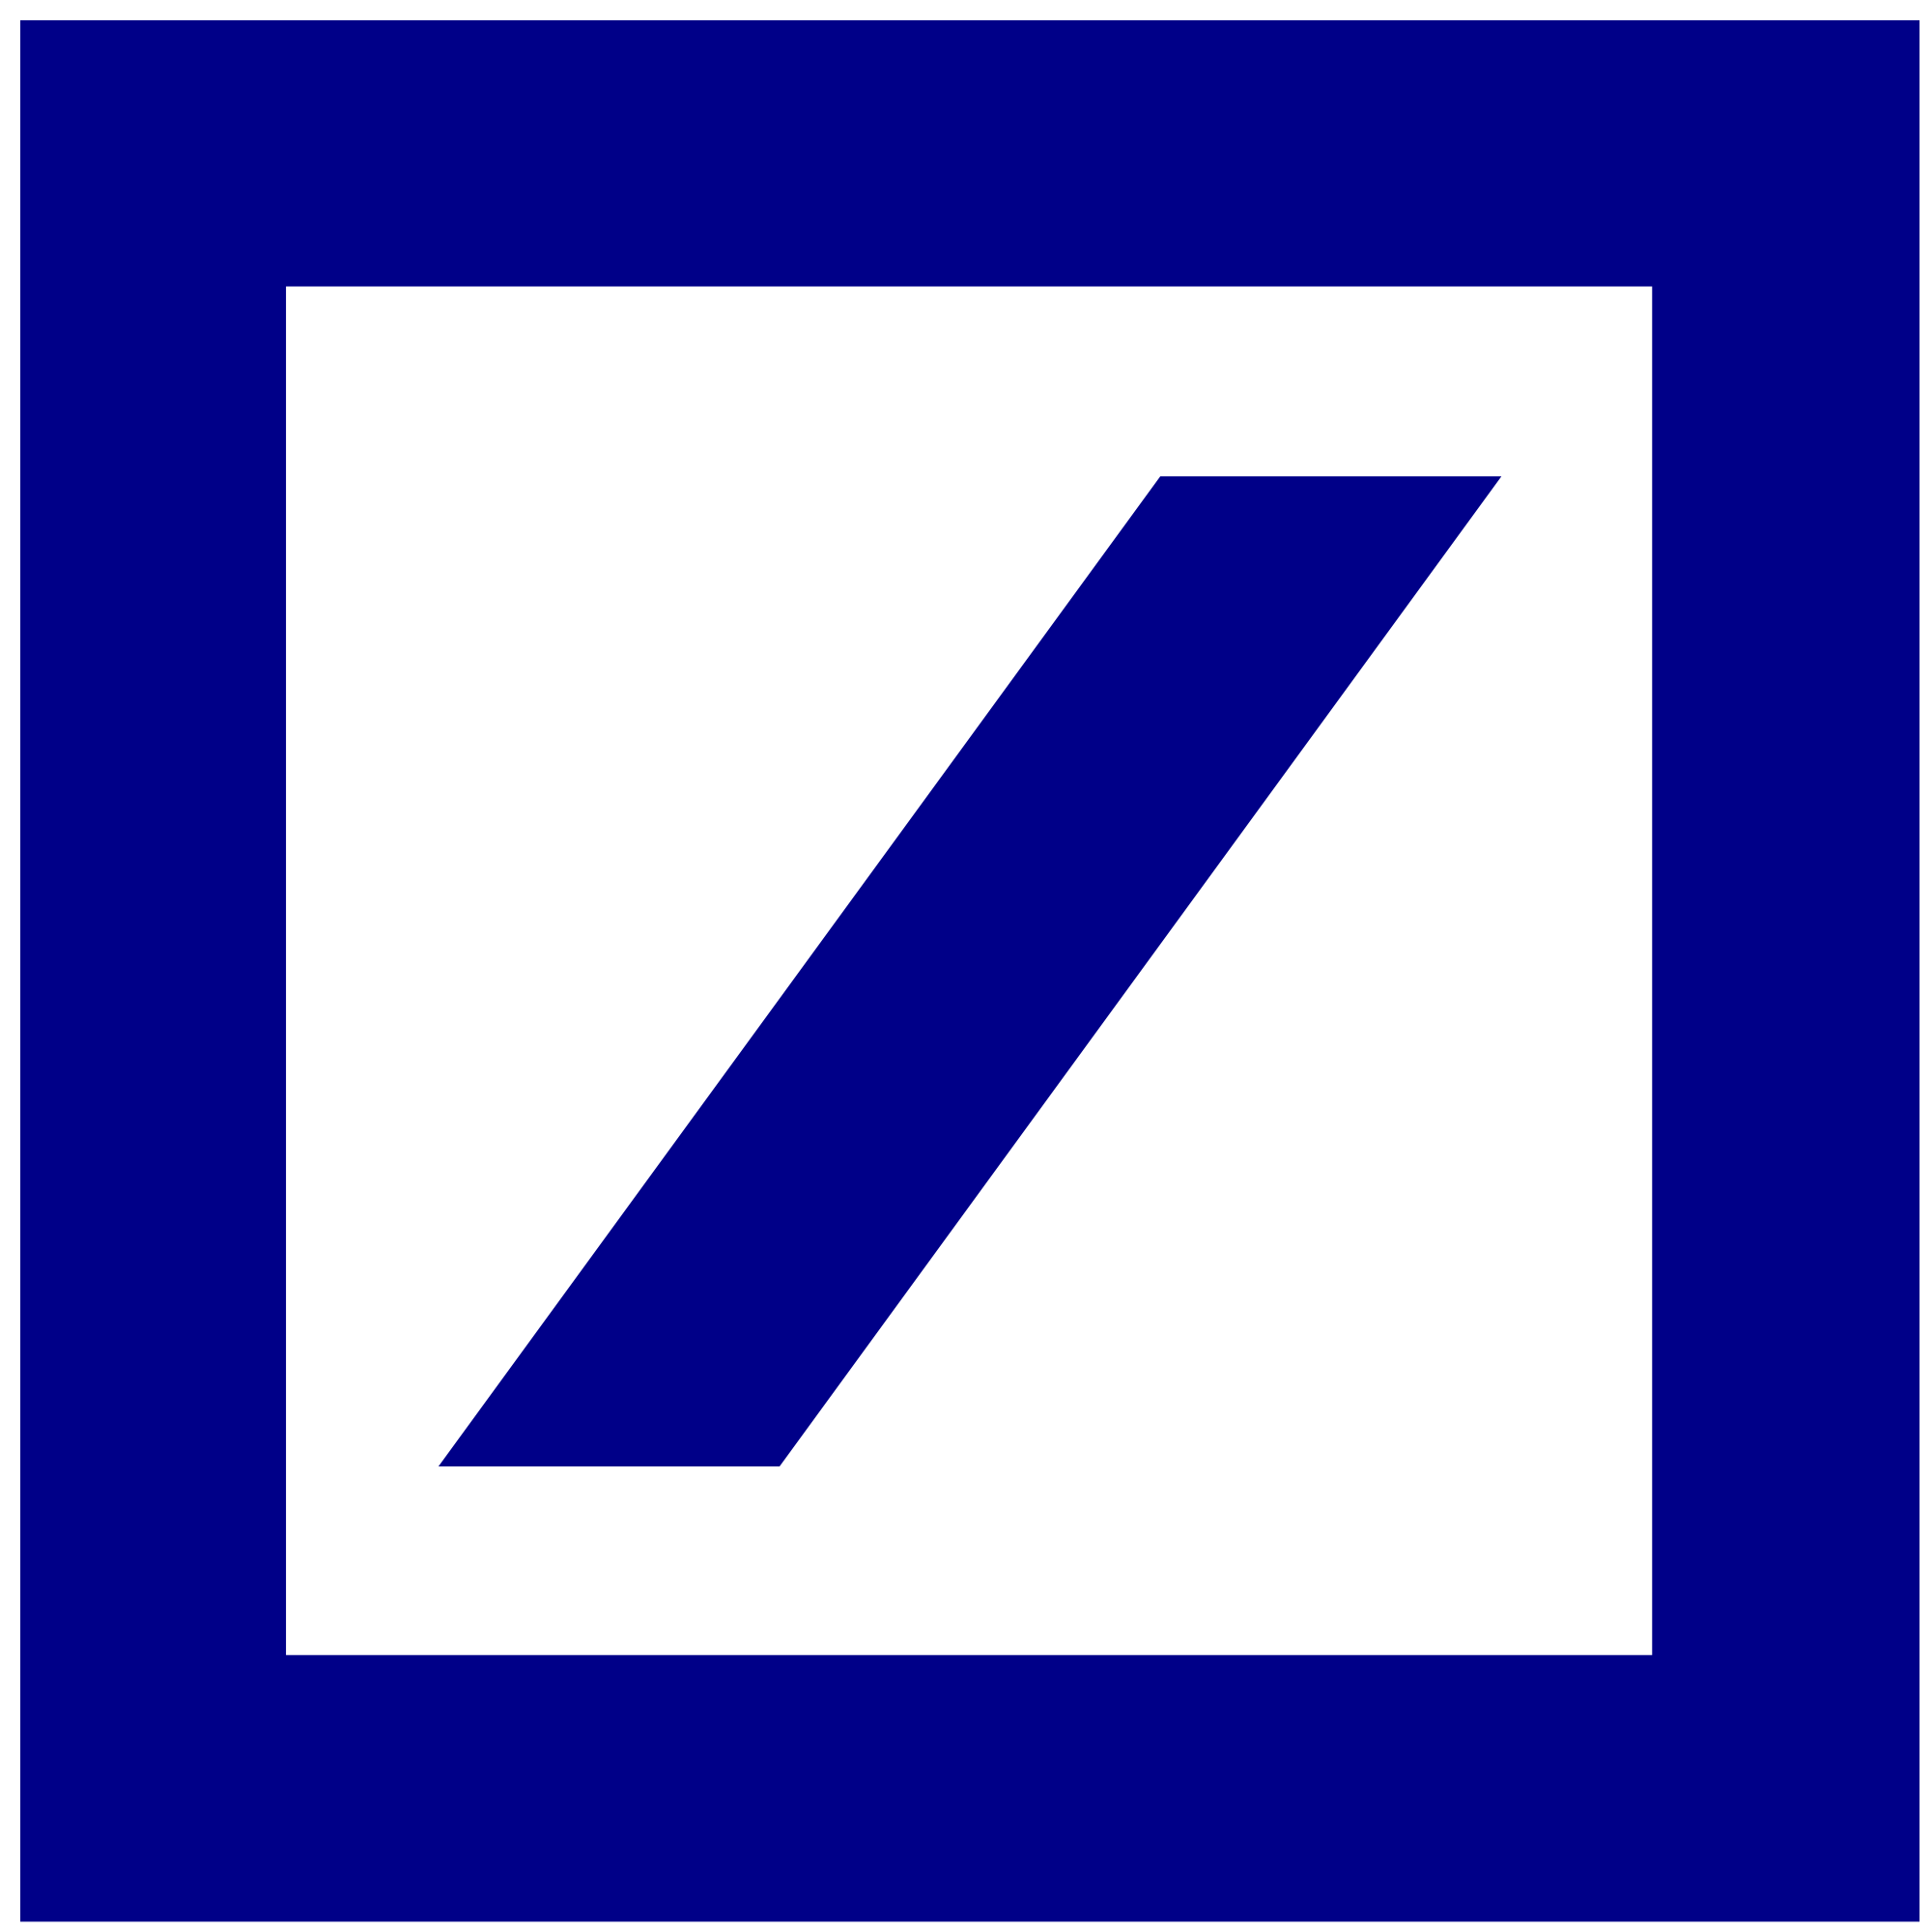 Deutsche Logo Wallpaper